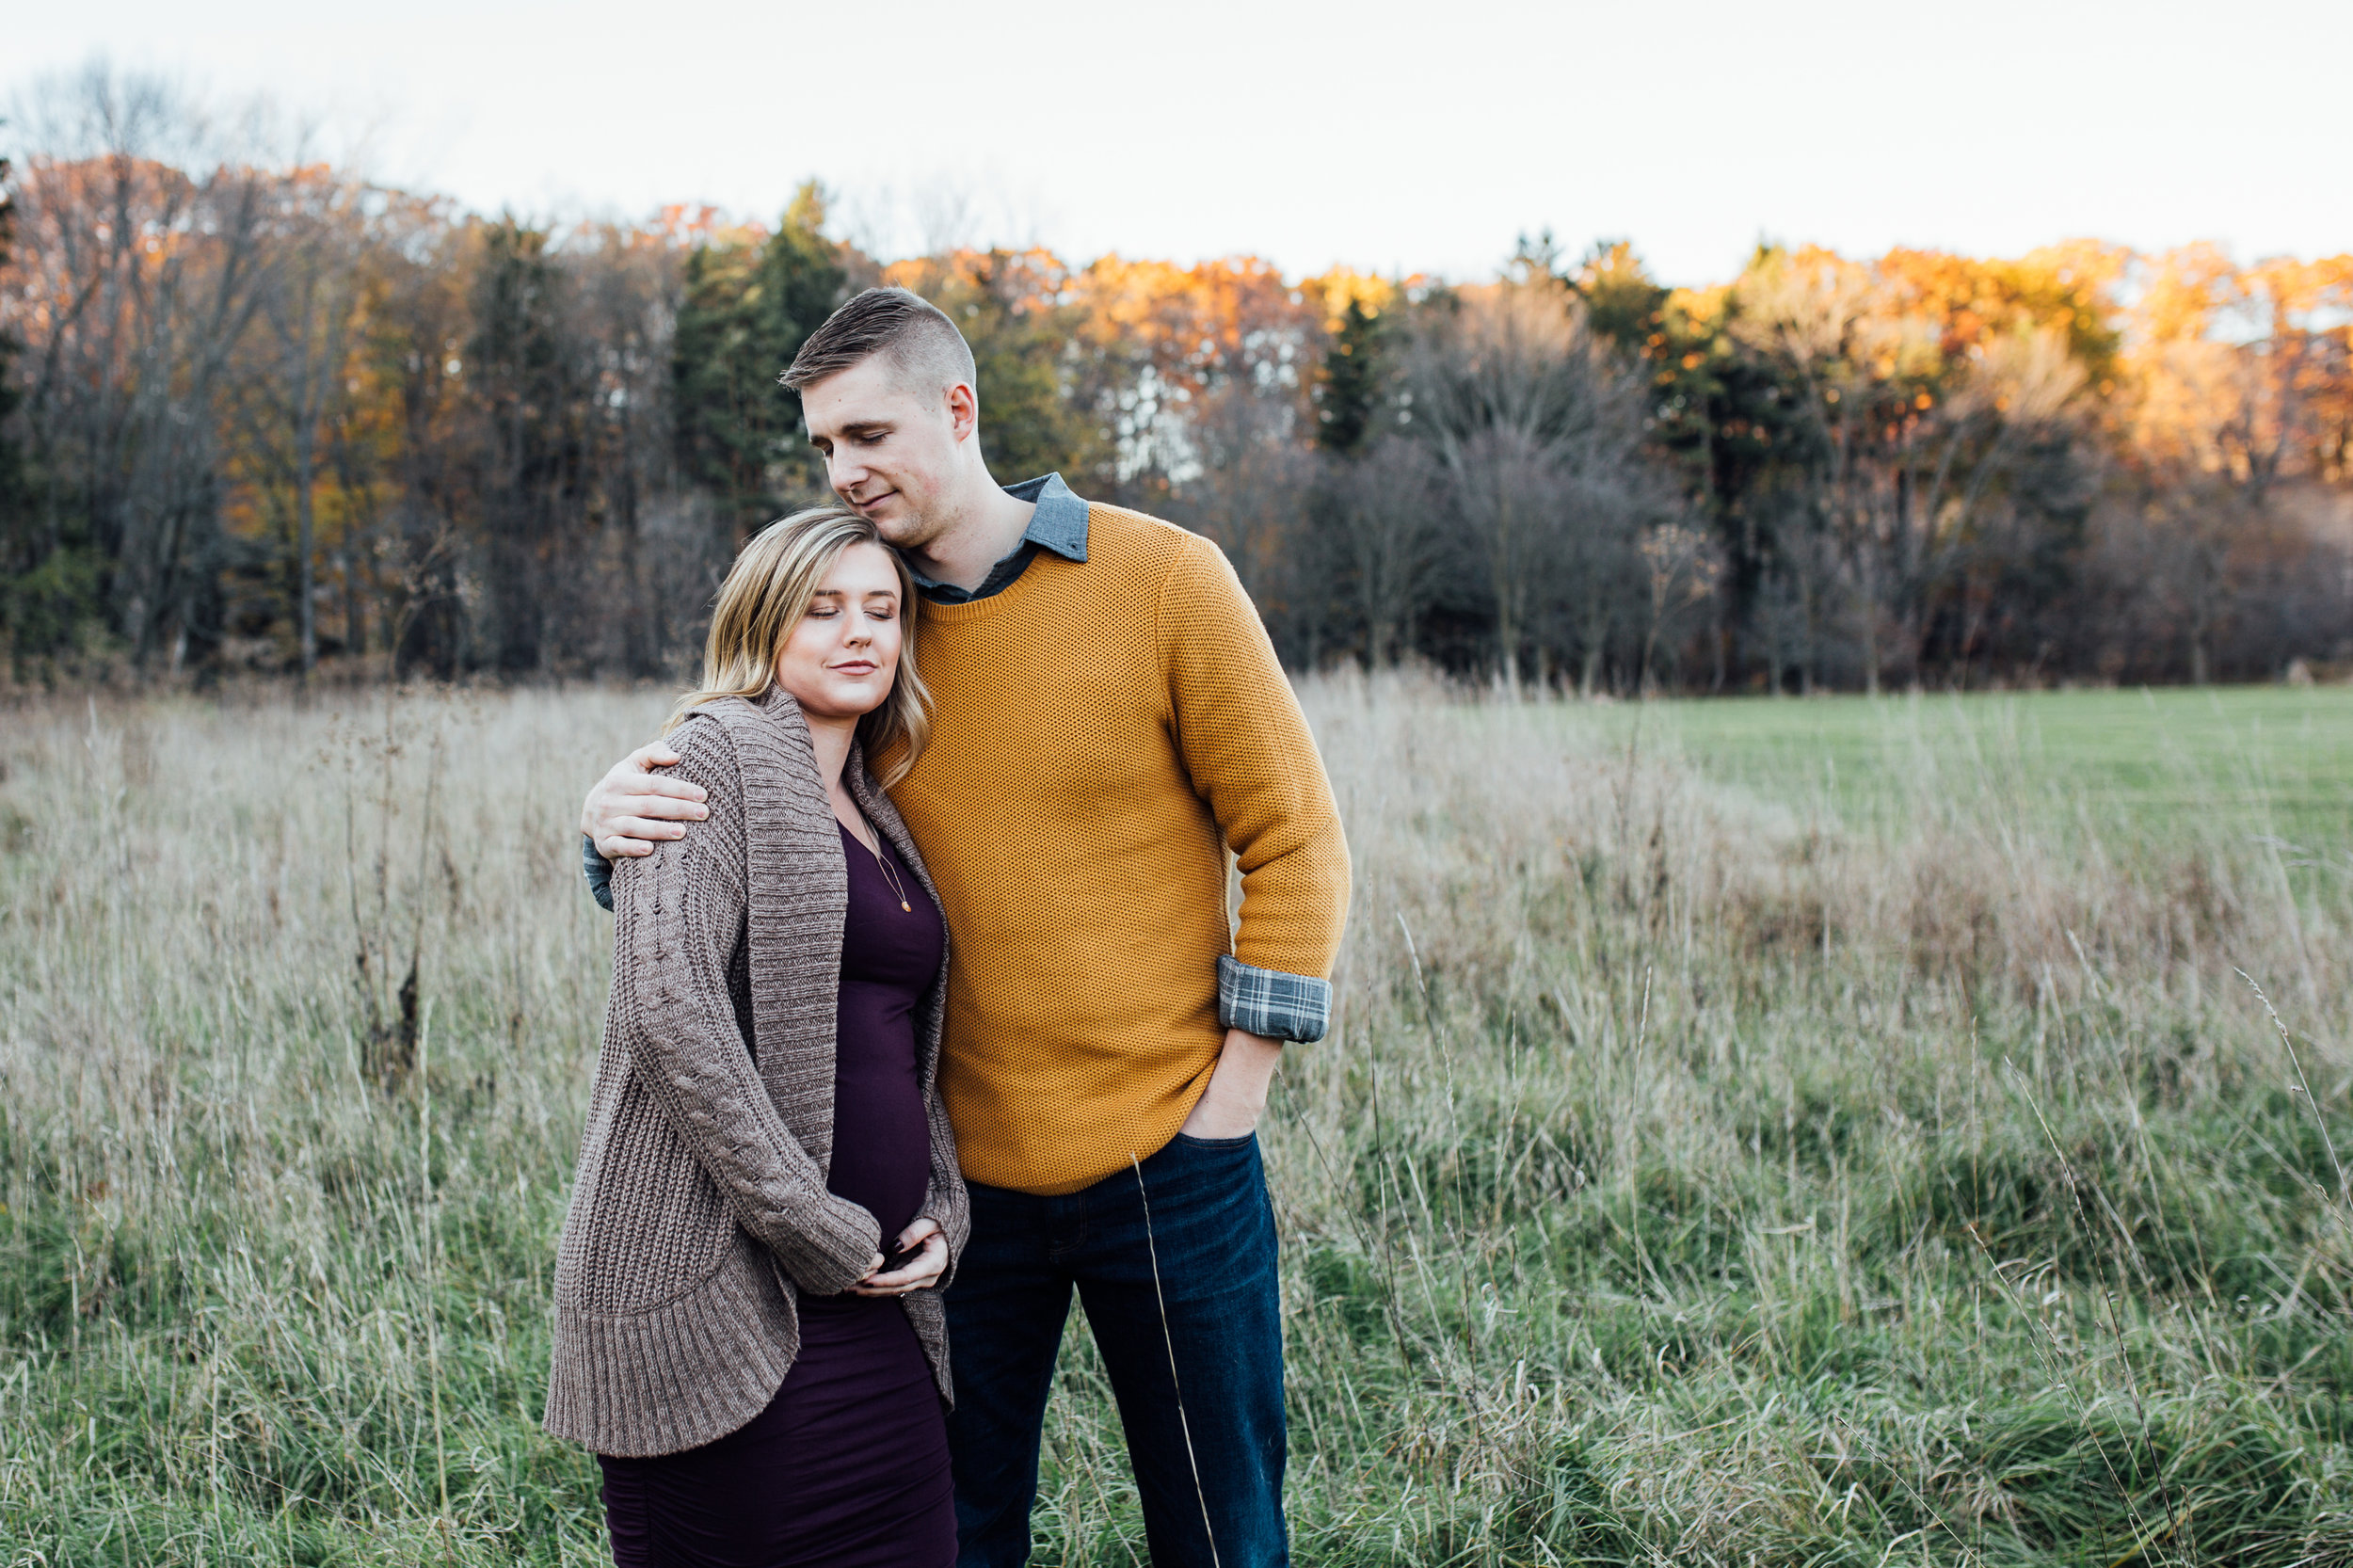 Carrie Hall Photography    Cleveland, Ohio    Maternity Photographer